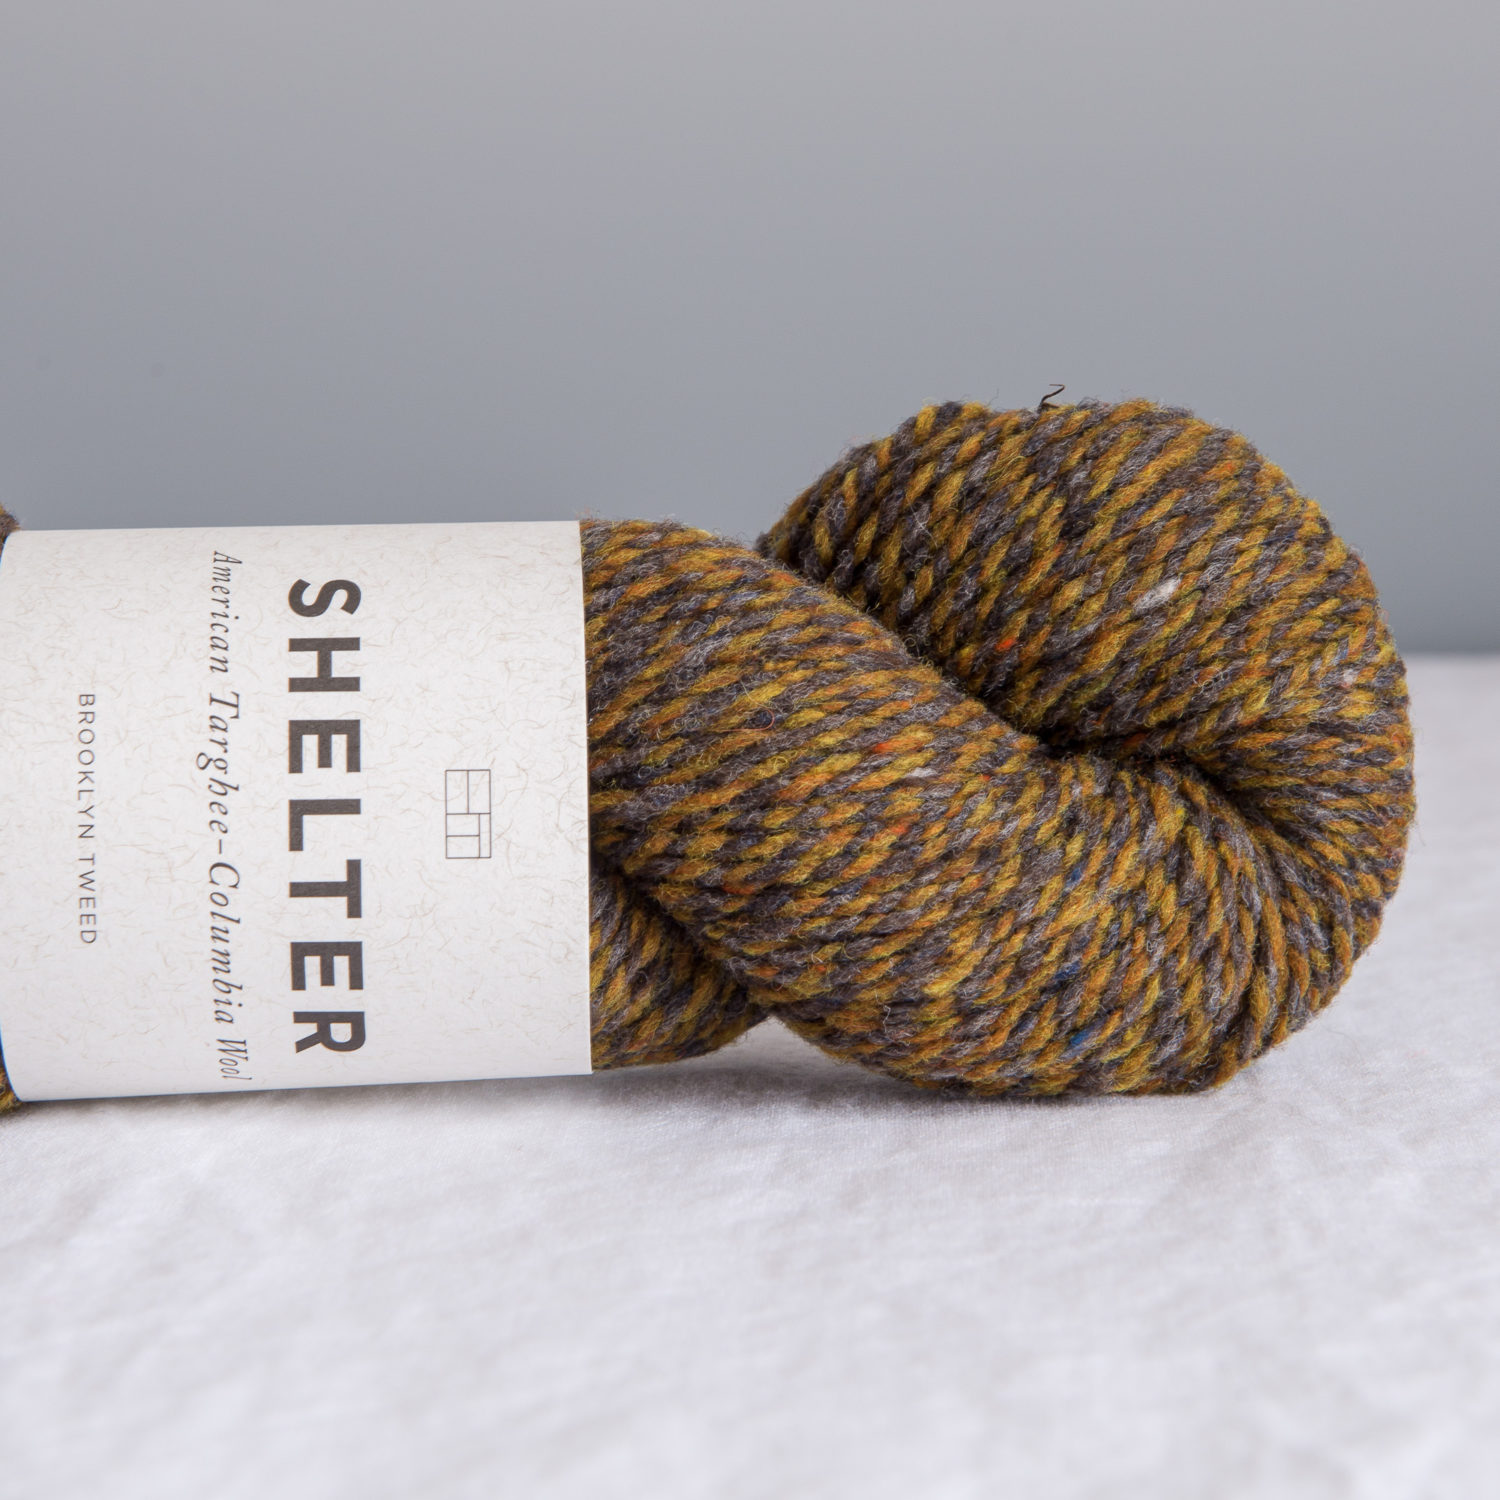 SHELTER - Brooklyn Tweed